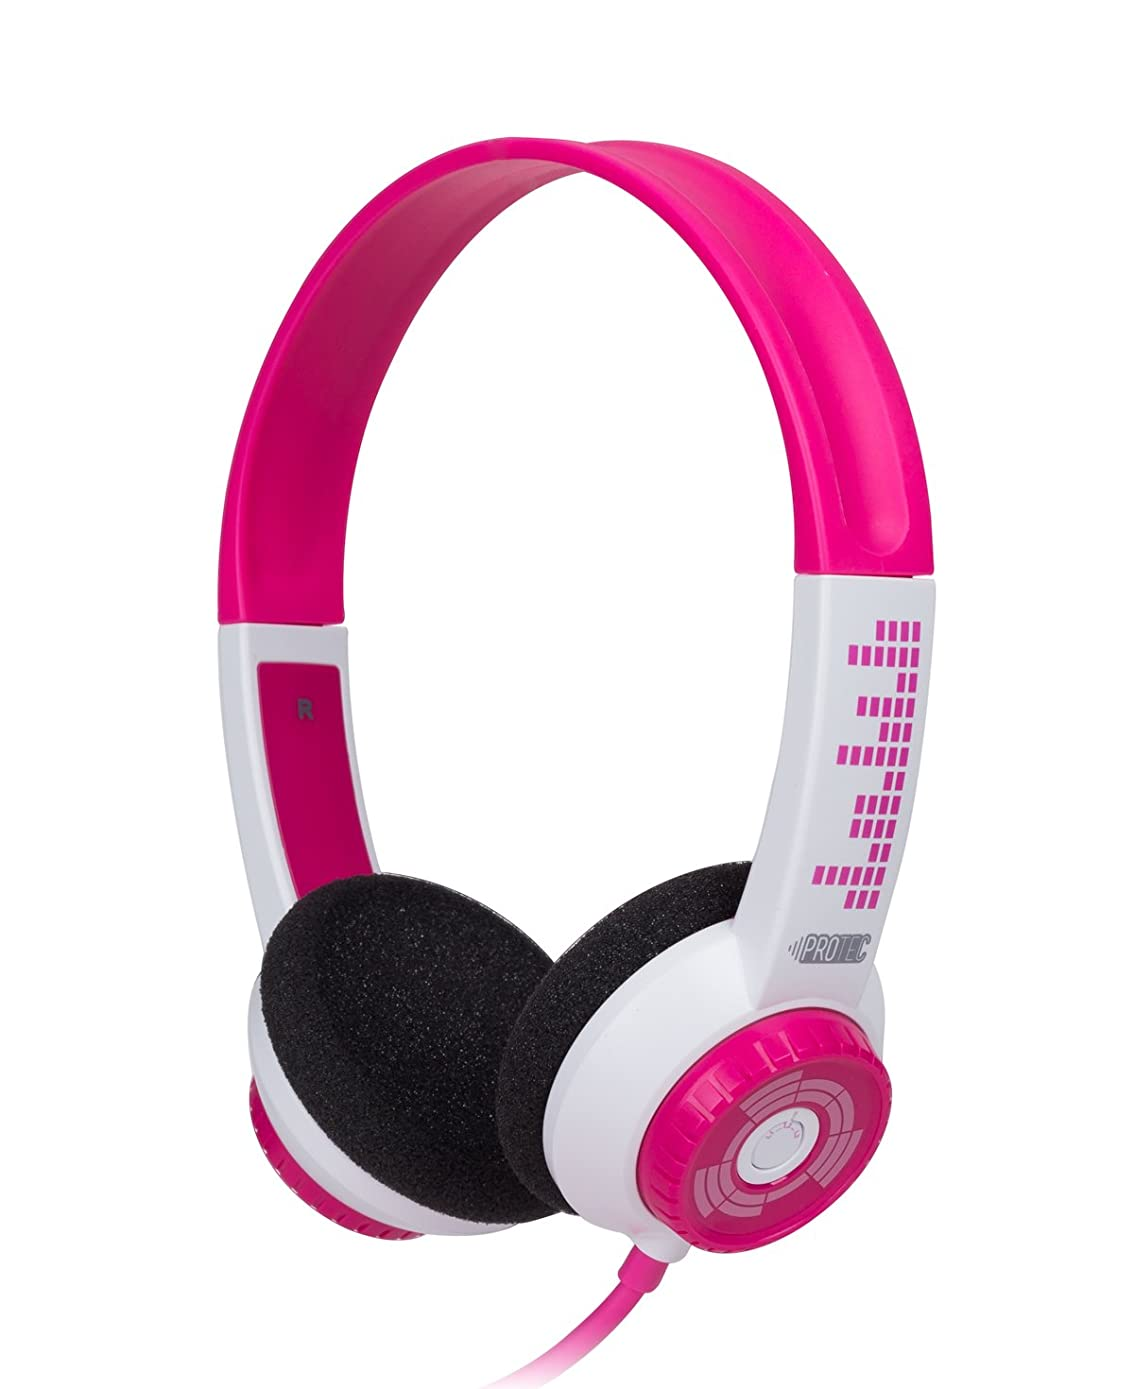 FSL Protec Kids Headphones with Adjustable Volume Limiting (Pink)